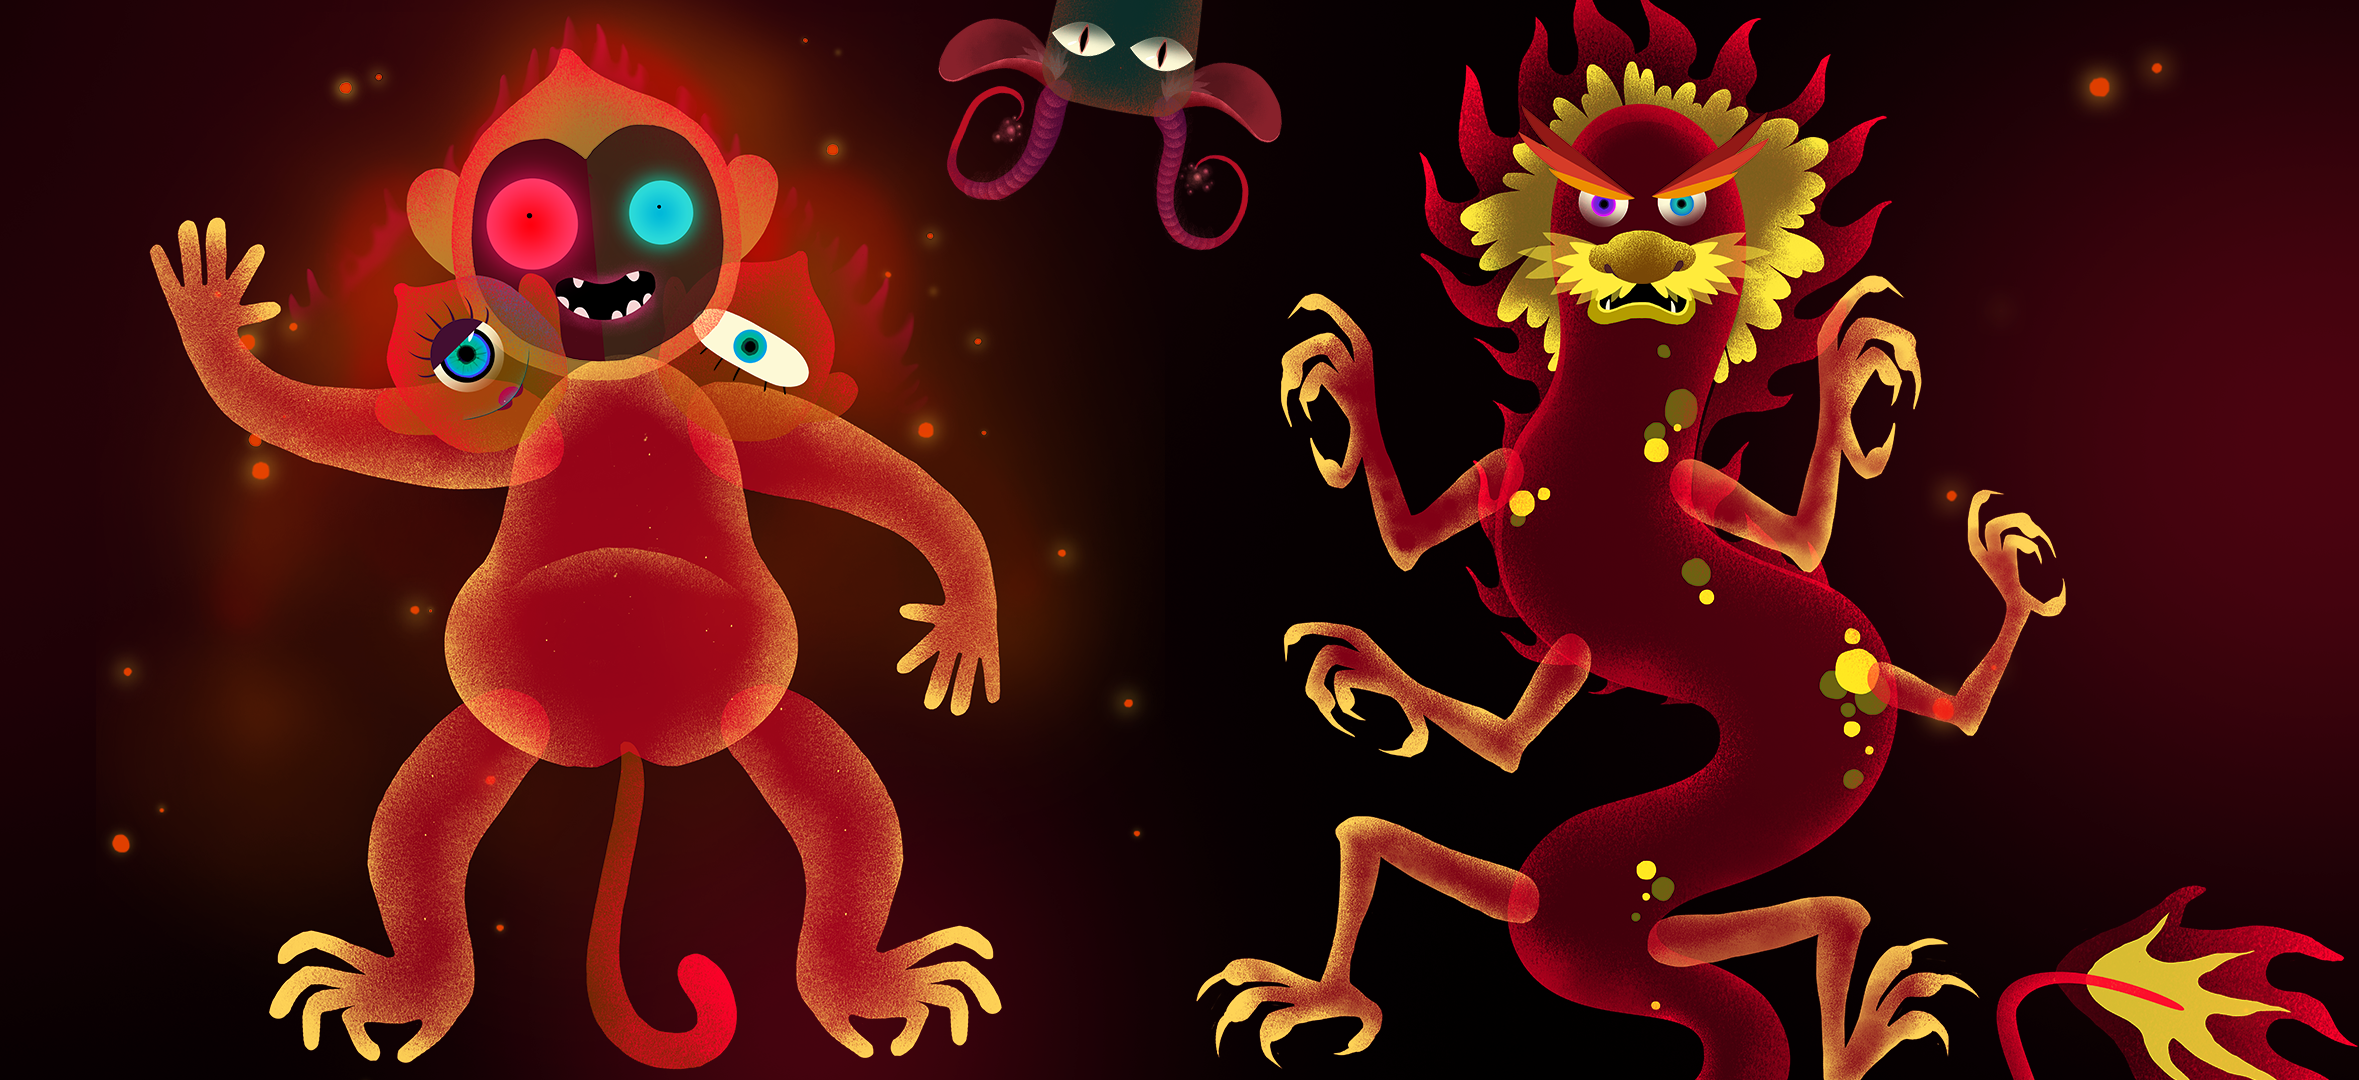 Dt03 Themonsters Chinesenewyear Newsltr 2359w